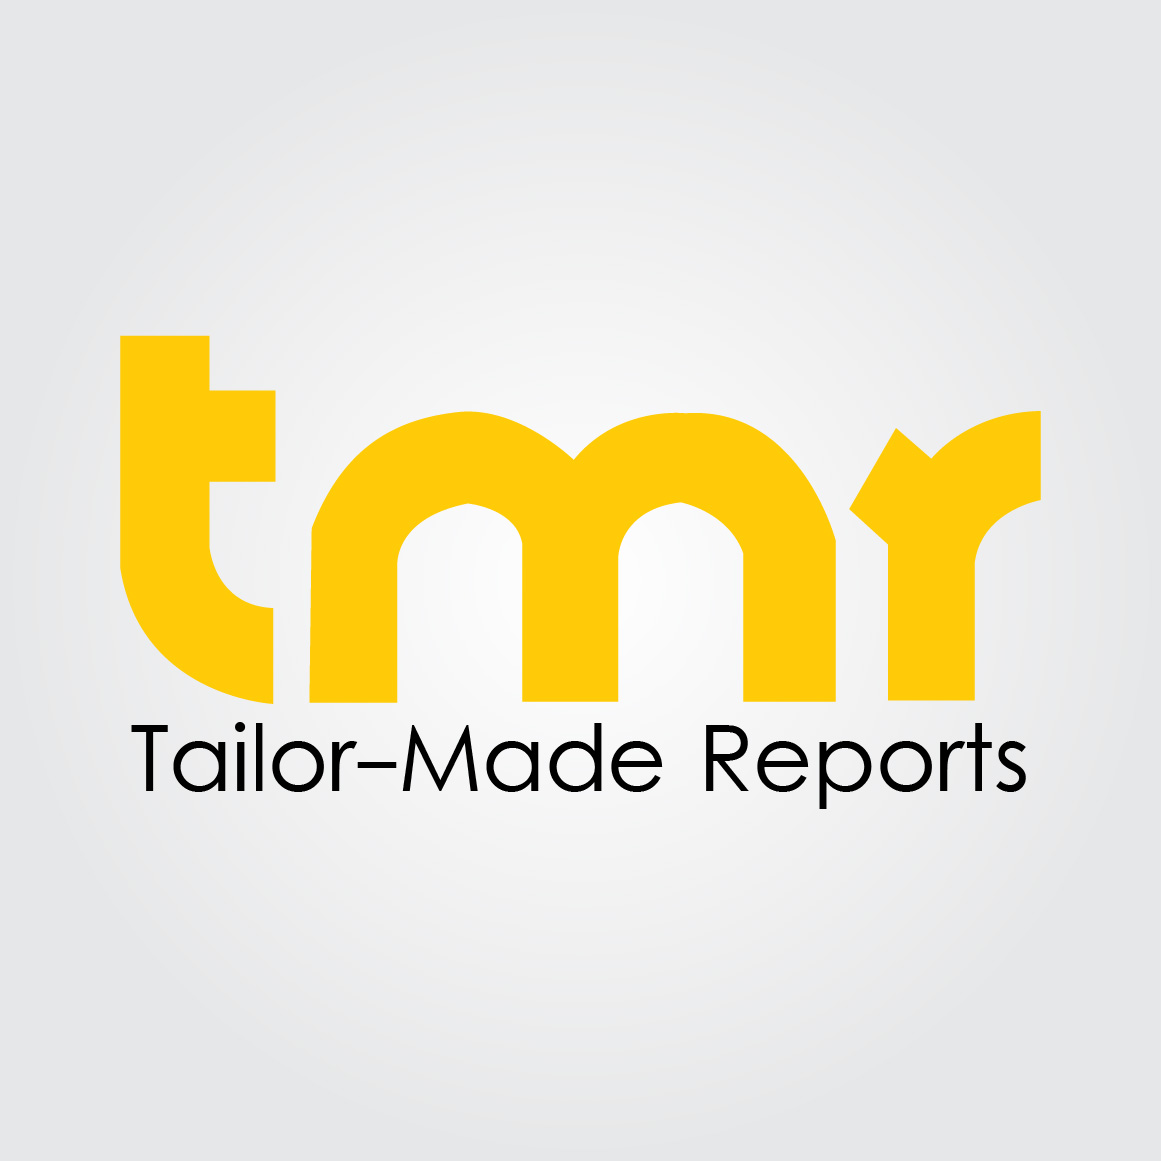 Asia PacificThermoelectric Modules Market will observe dominant growth to 2030 | TMR Research Study